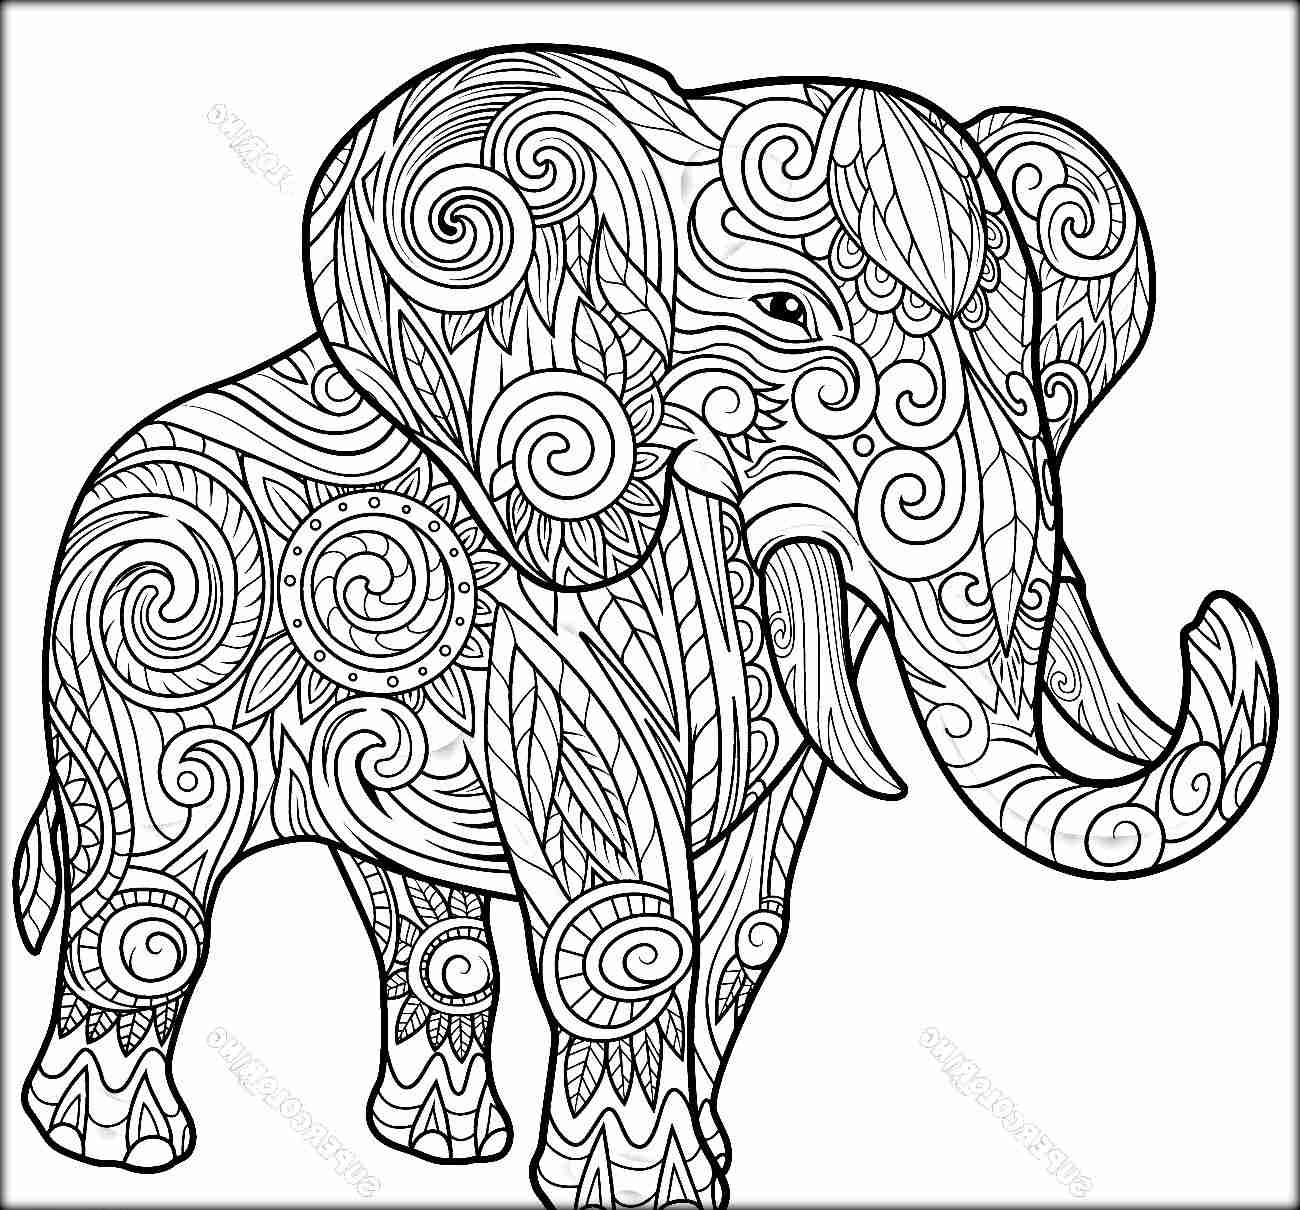 Mandala Elephant Coloring Pages At Getcolorings